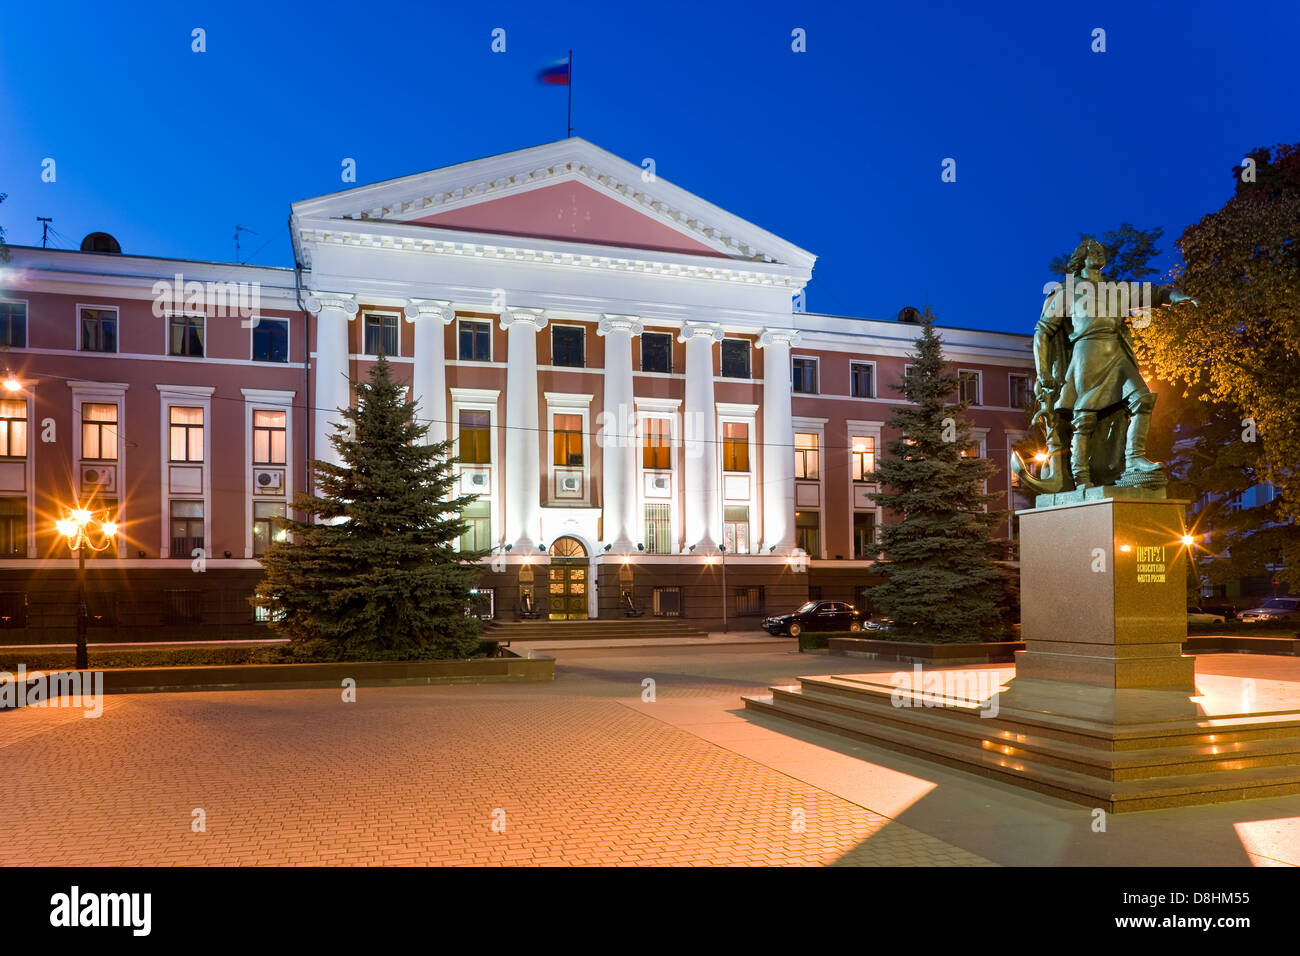 Russia, Kaliningrad, Administration building of the Russian Baltic Naval fleet and statue of Peter the Great - Stock Image